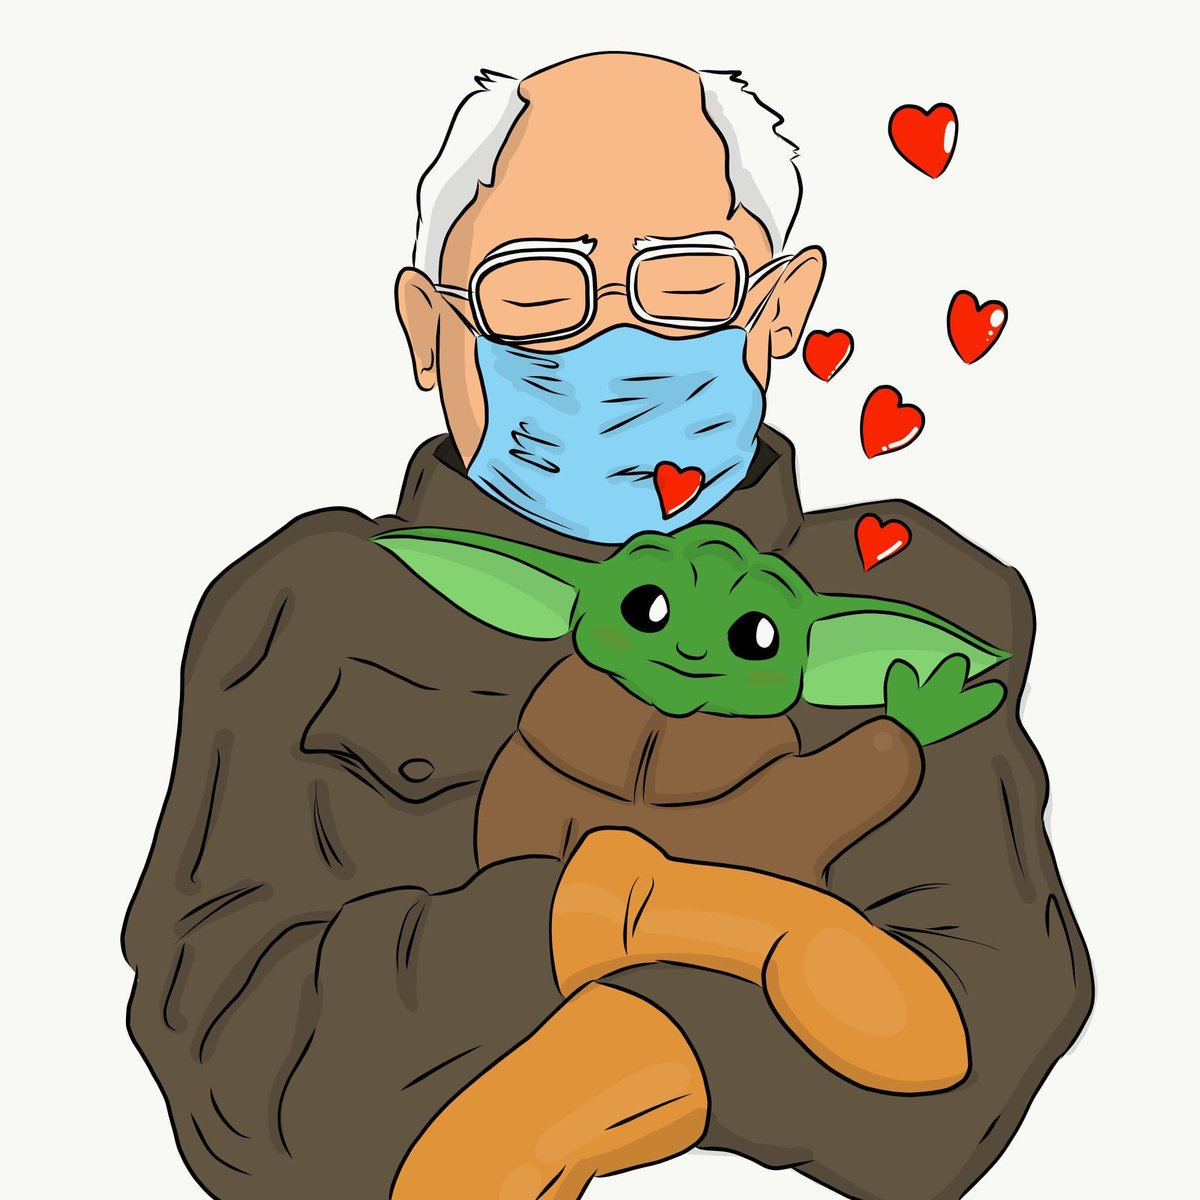 Bernie & Grogu are a beautiful couple #starwars #grogu #sandersmeme #Berniememes #art #BernieSanders #grogumemes